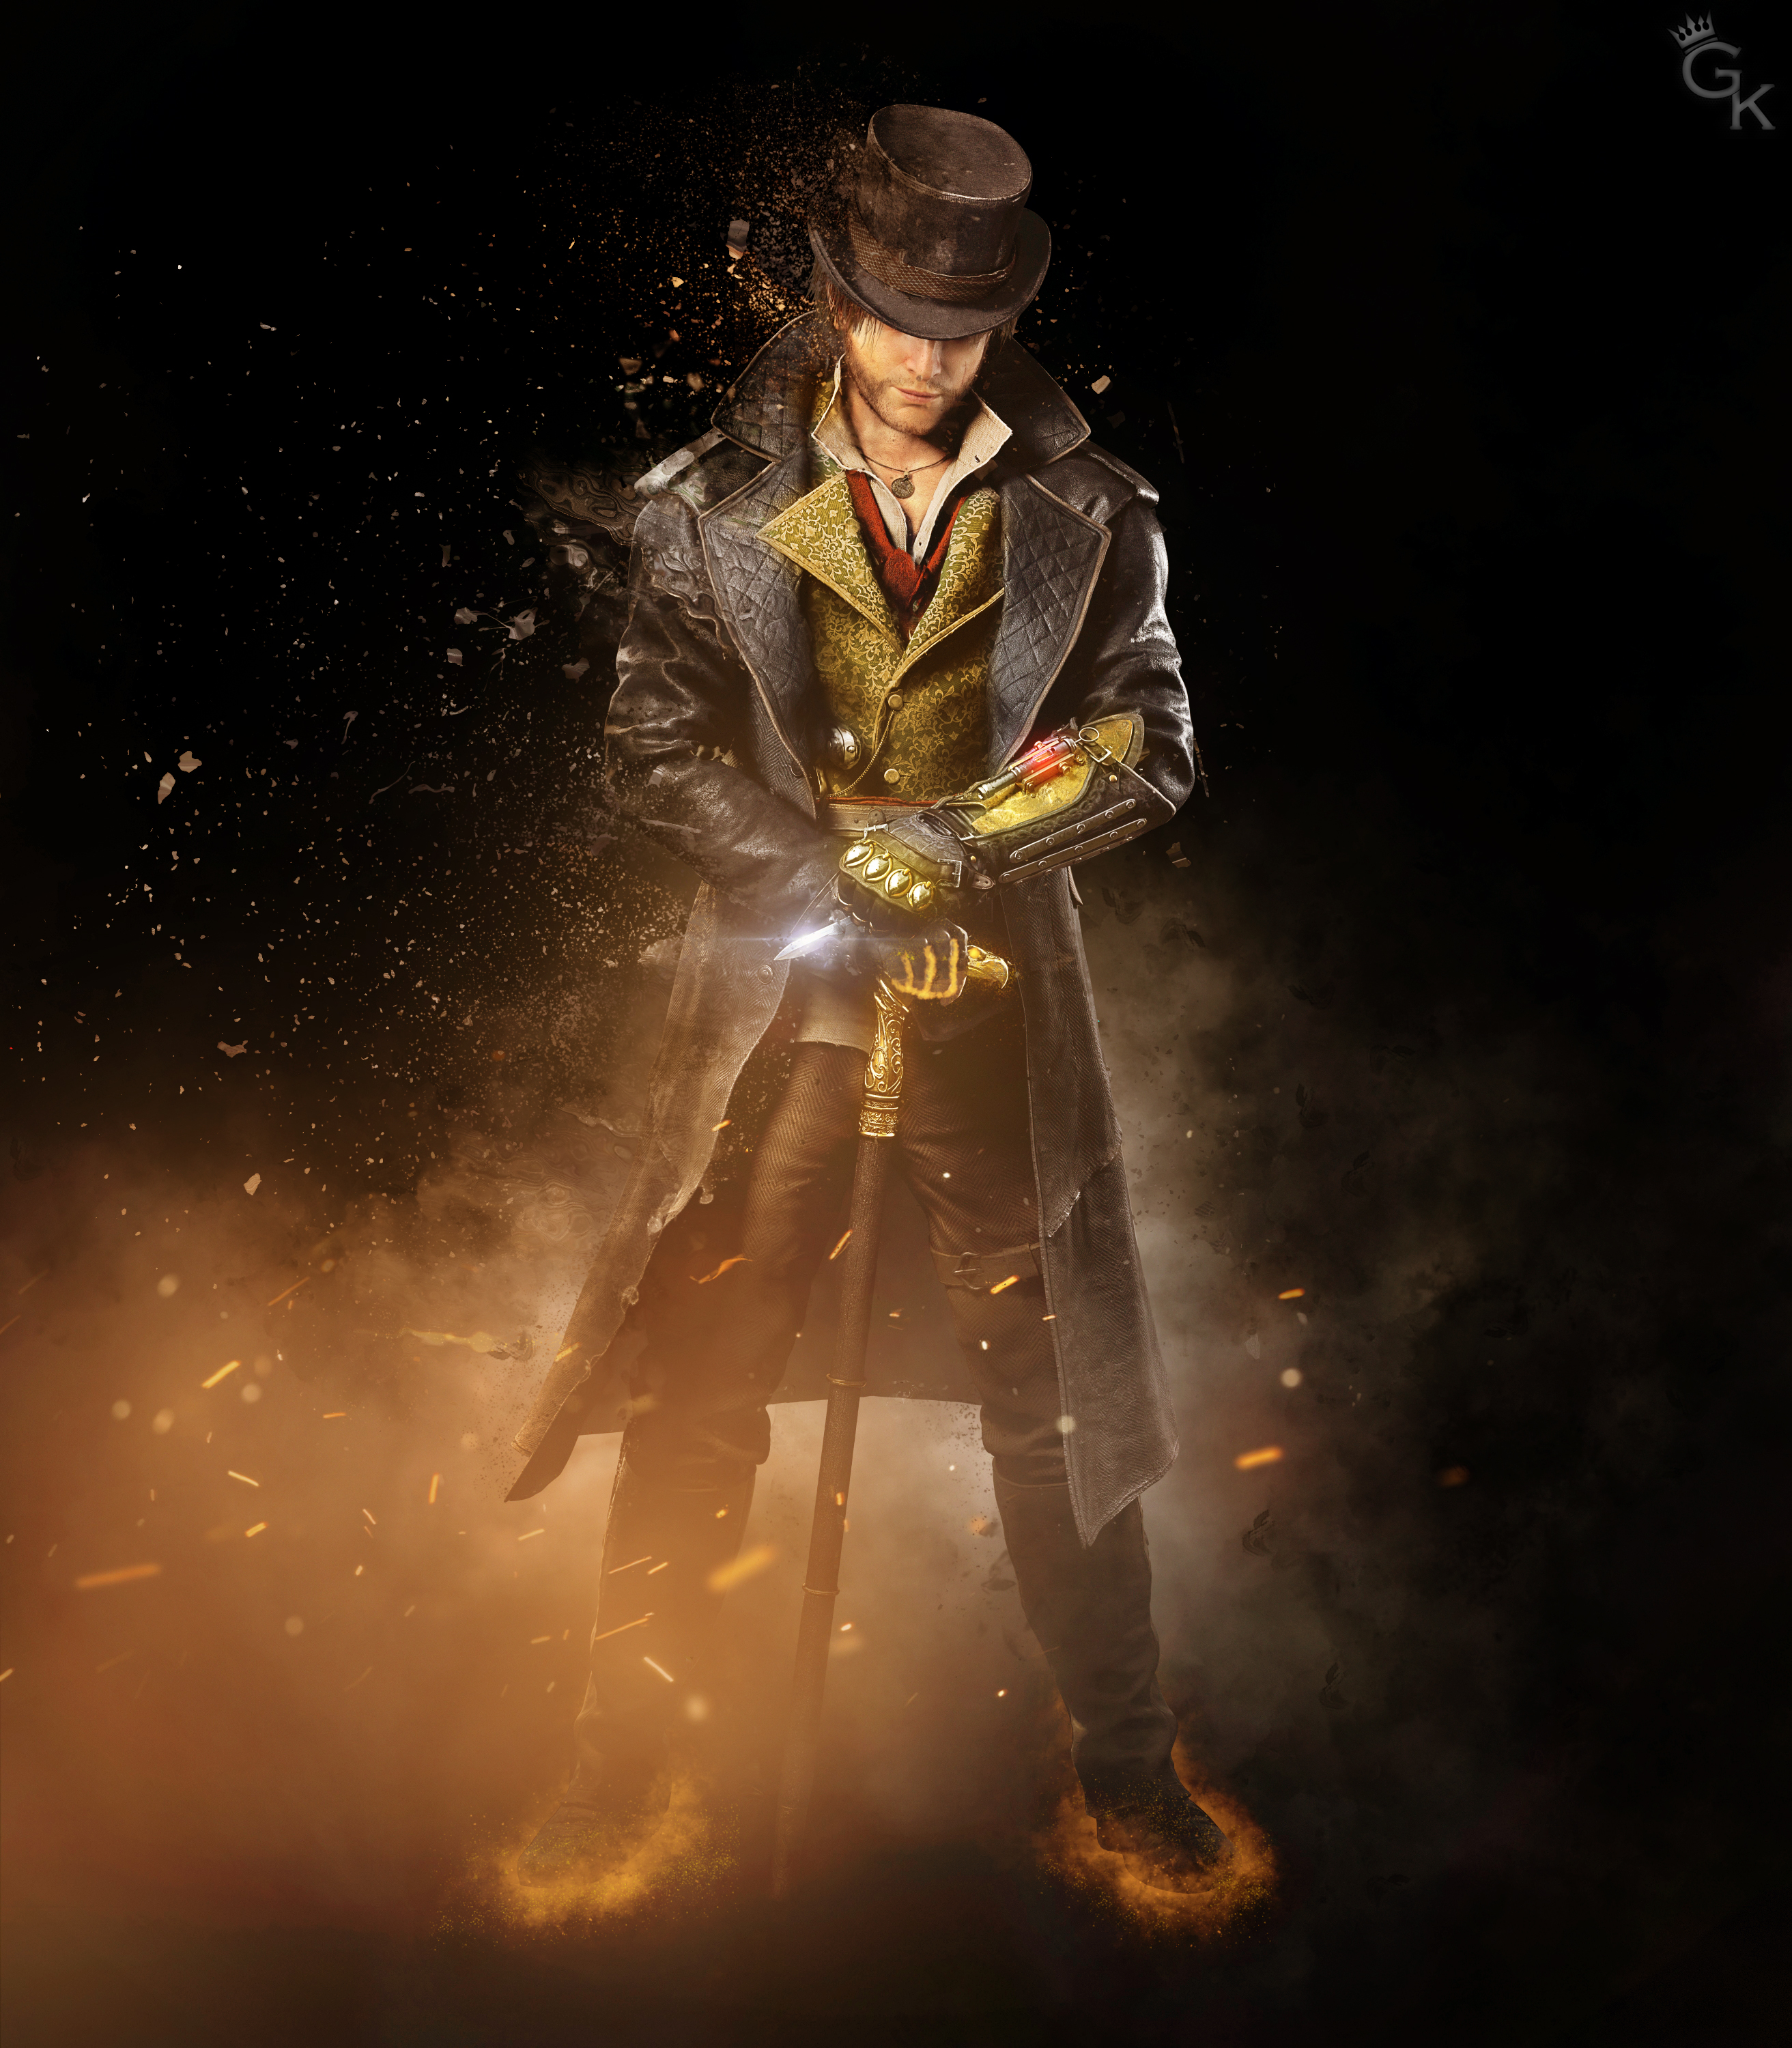 Assassin S Creed Syndicate Jacob Frye By General K1mb0 On Deviantart